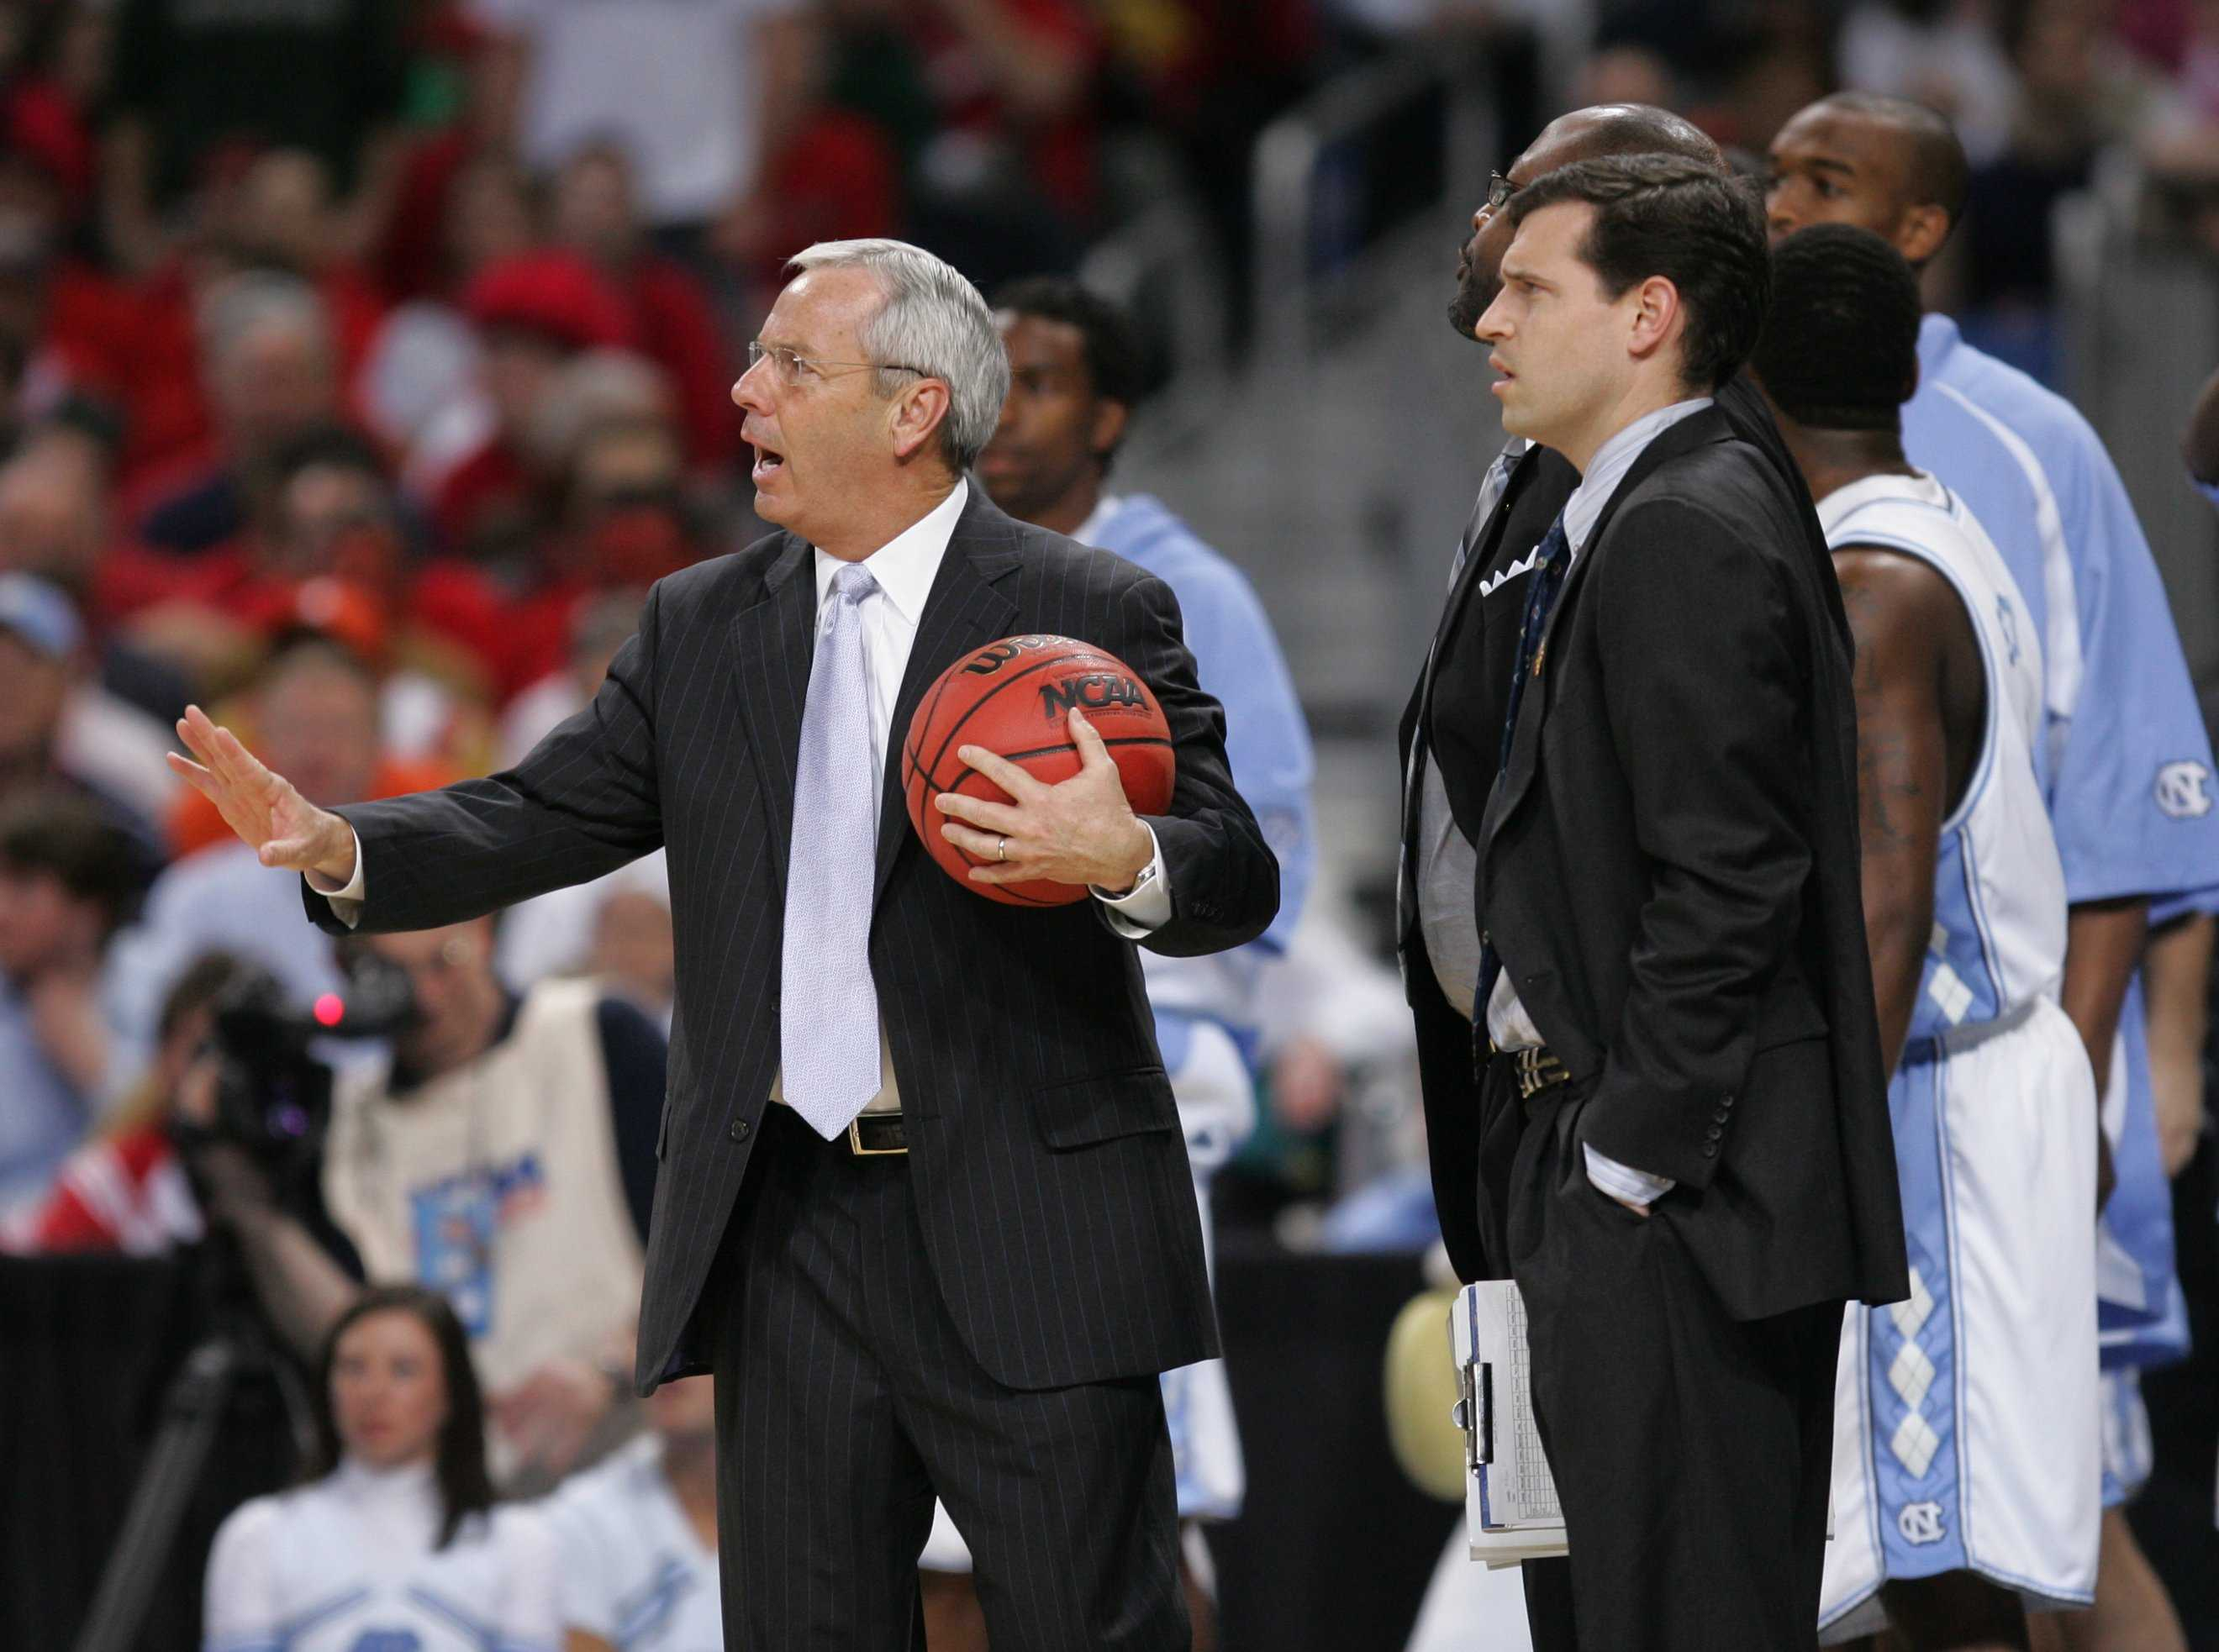 (April 2) ST. LOUIS, MO - North Carolina head coach Roy Williams, left and assistant coach C.B. McGrath watch as referees break up an altercation between Michigan State and North Carolina during the first half in the semifinal game of the Men's NCAA Final Four basketball tournament in St. Louis, Missouri, Saturday, April 2, 2005. (lde) 2005